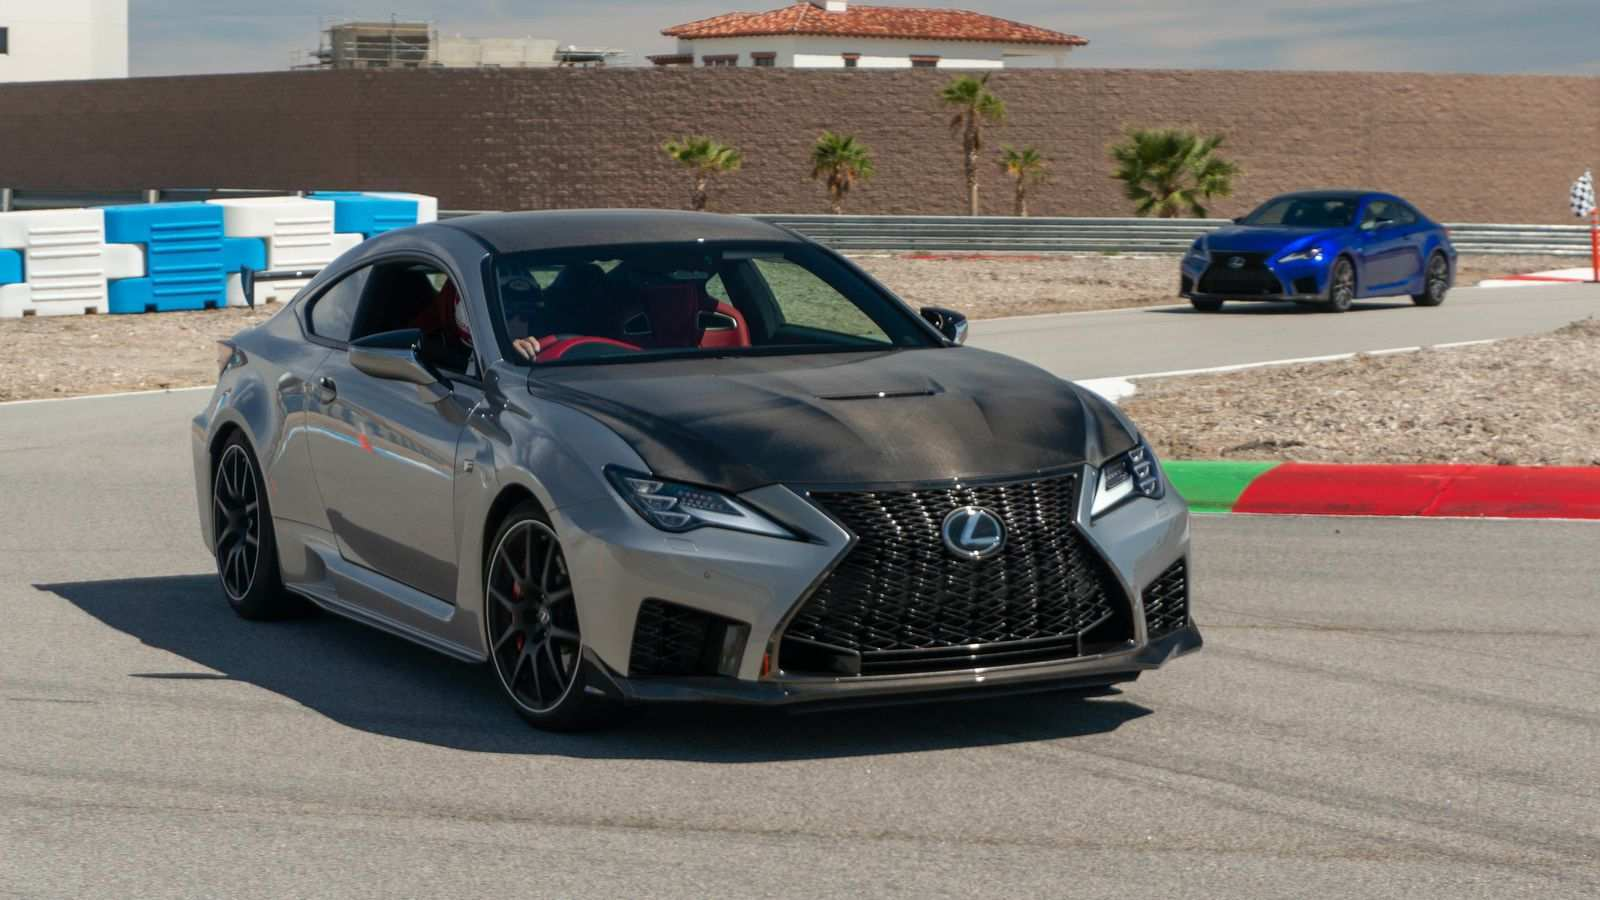 50 Best 2020 Lexus Rc F Track Edition 0 60 Specs